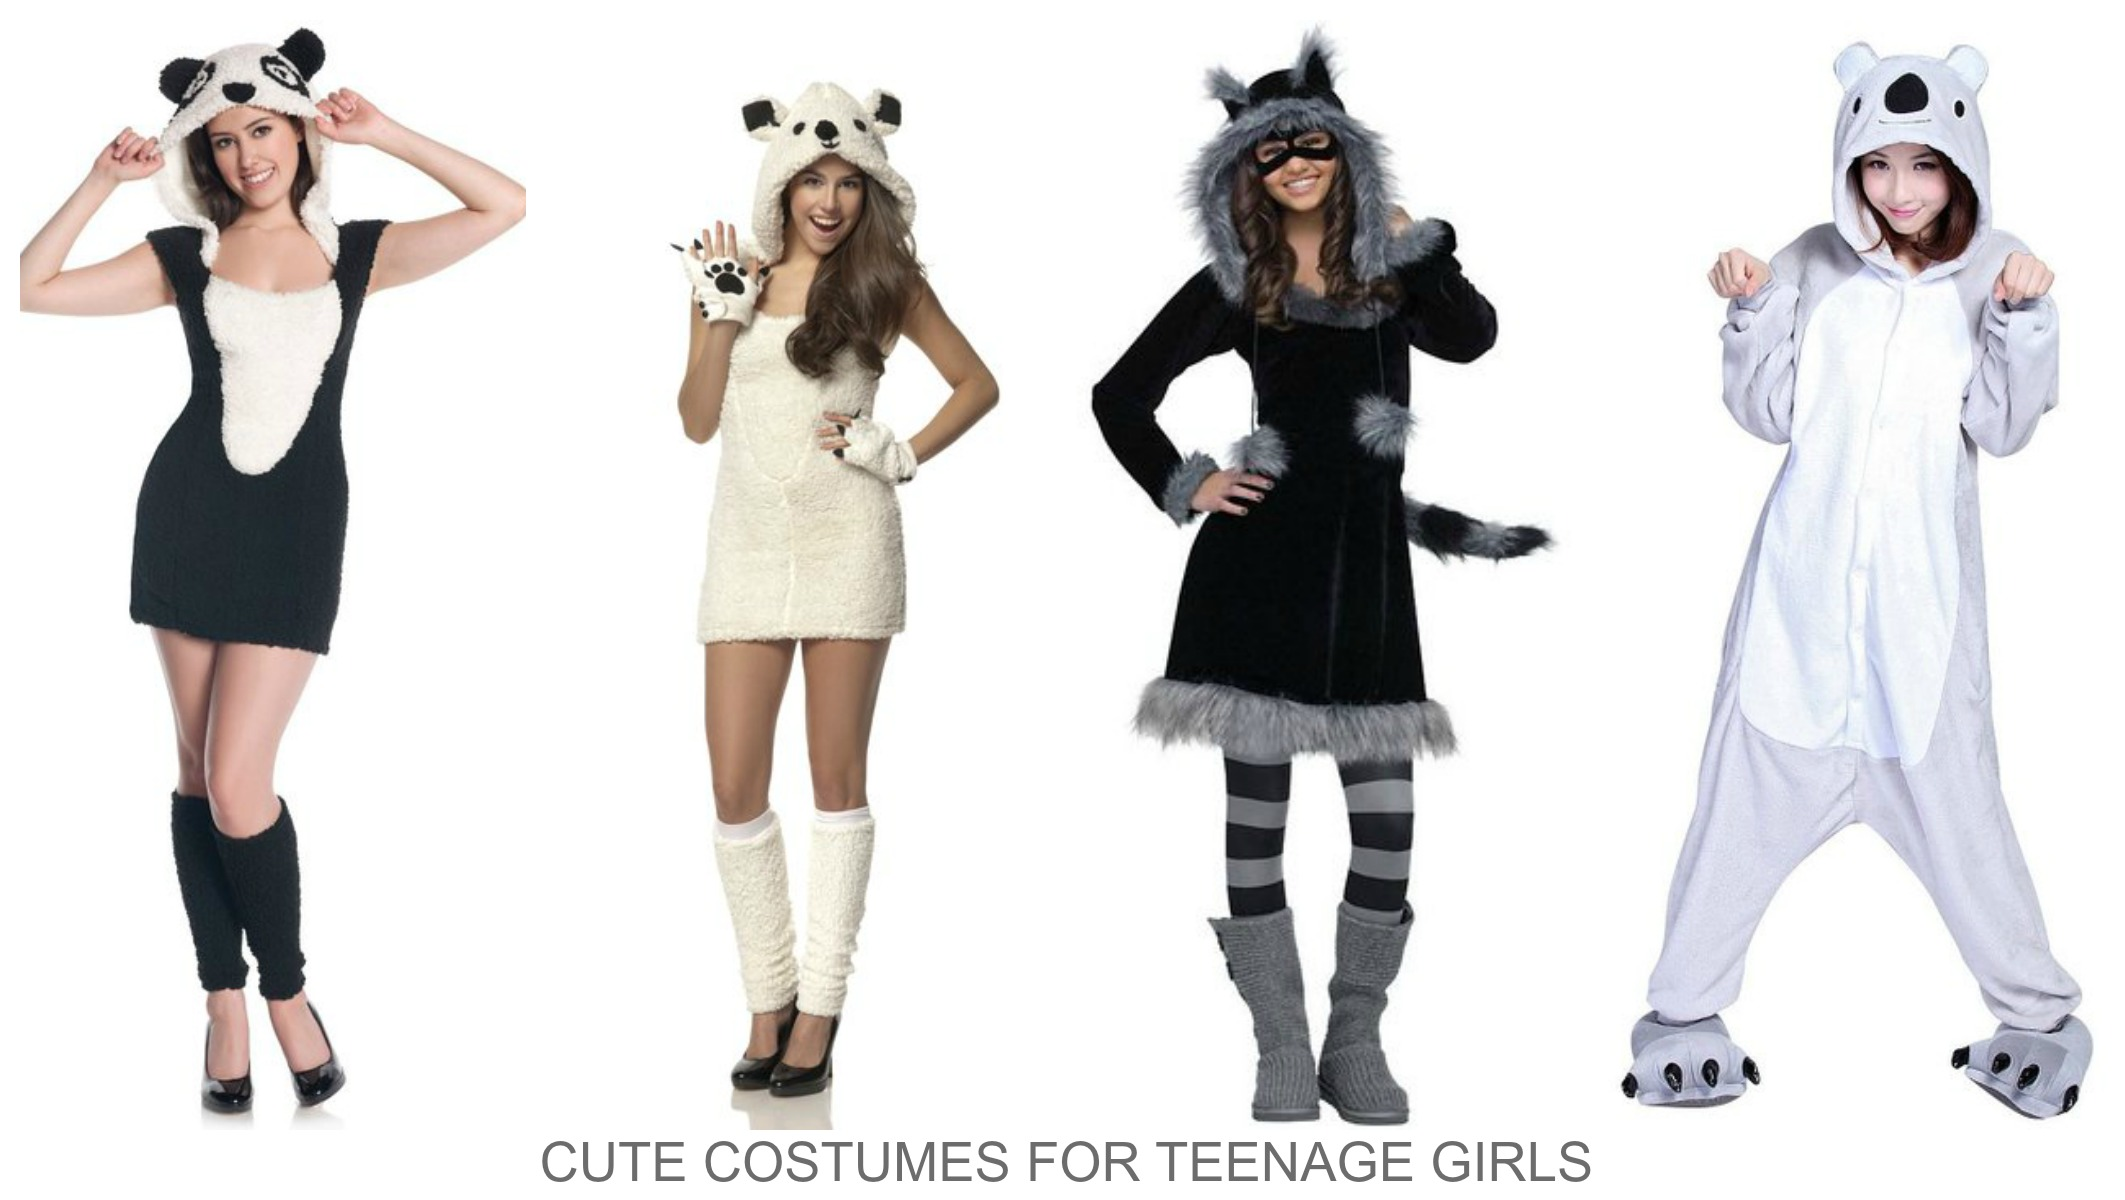 cute halloween costumes for women 2014, cute girl costume ideas